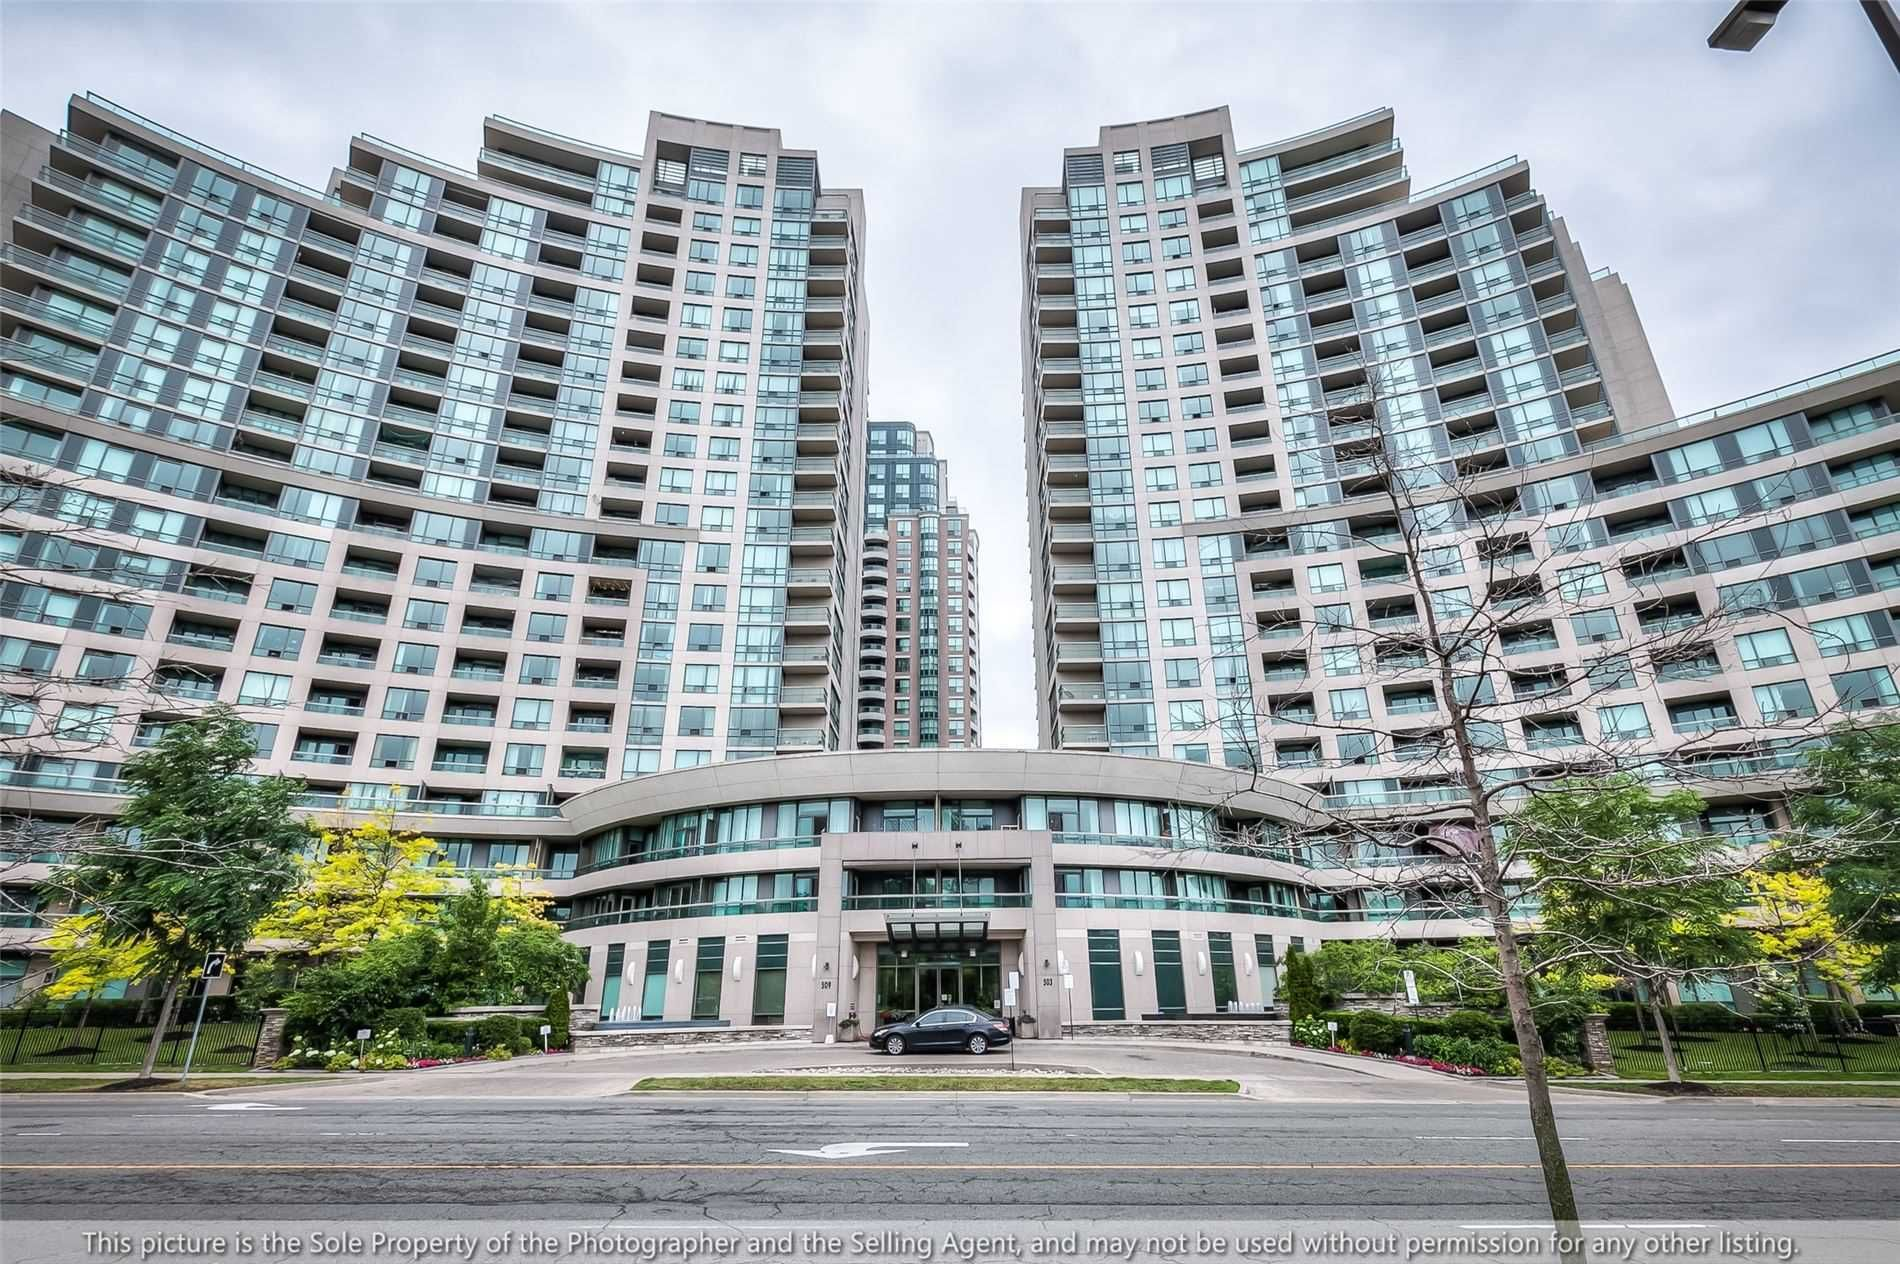 509 Beecroft Rd, unit 1701 for sale in Willowdale - image #1